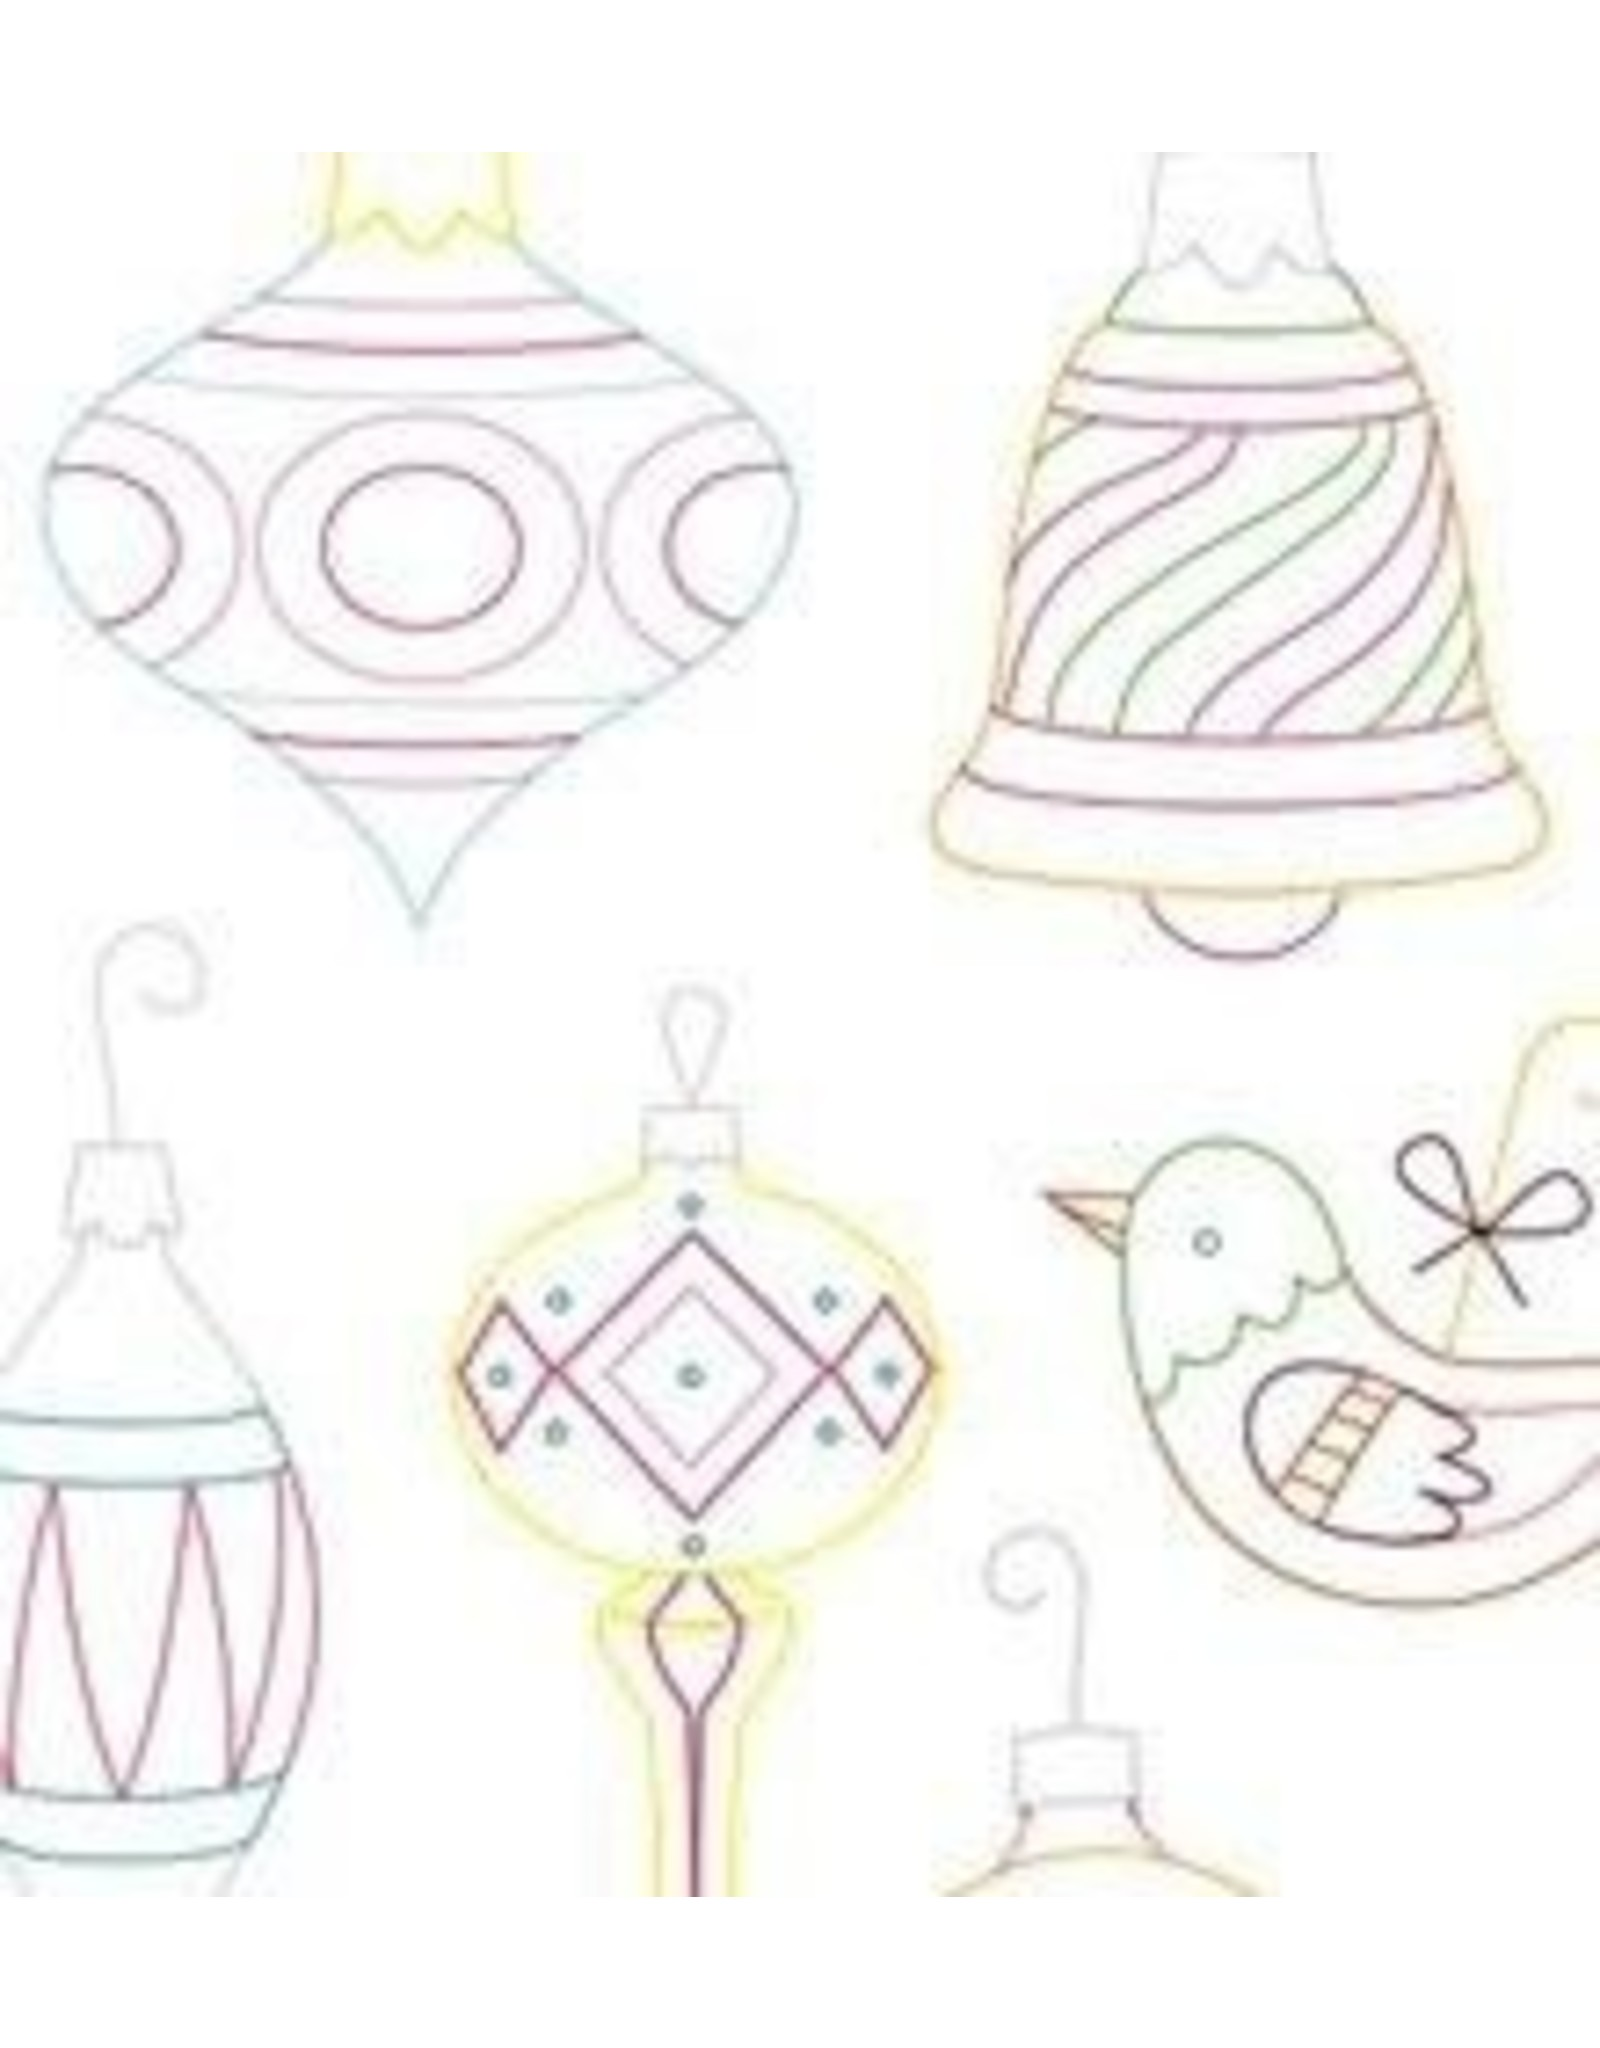 Sublime Stitching Embroidery Iron-On Transfers, Vintage Ornaments